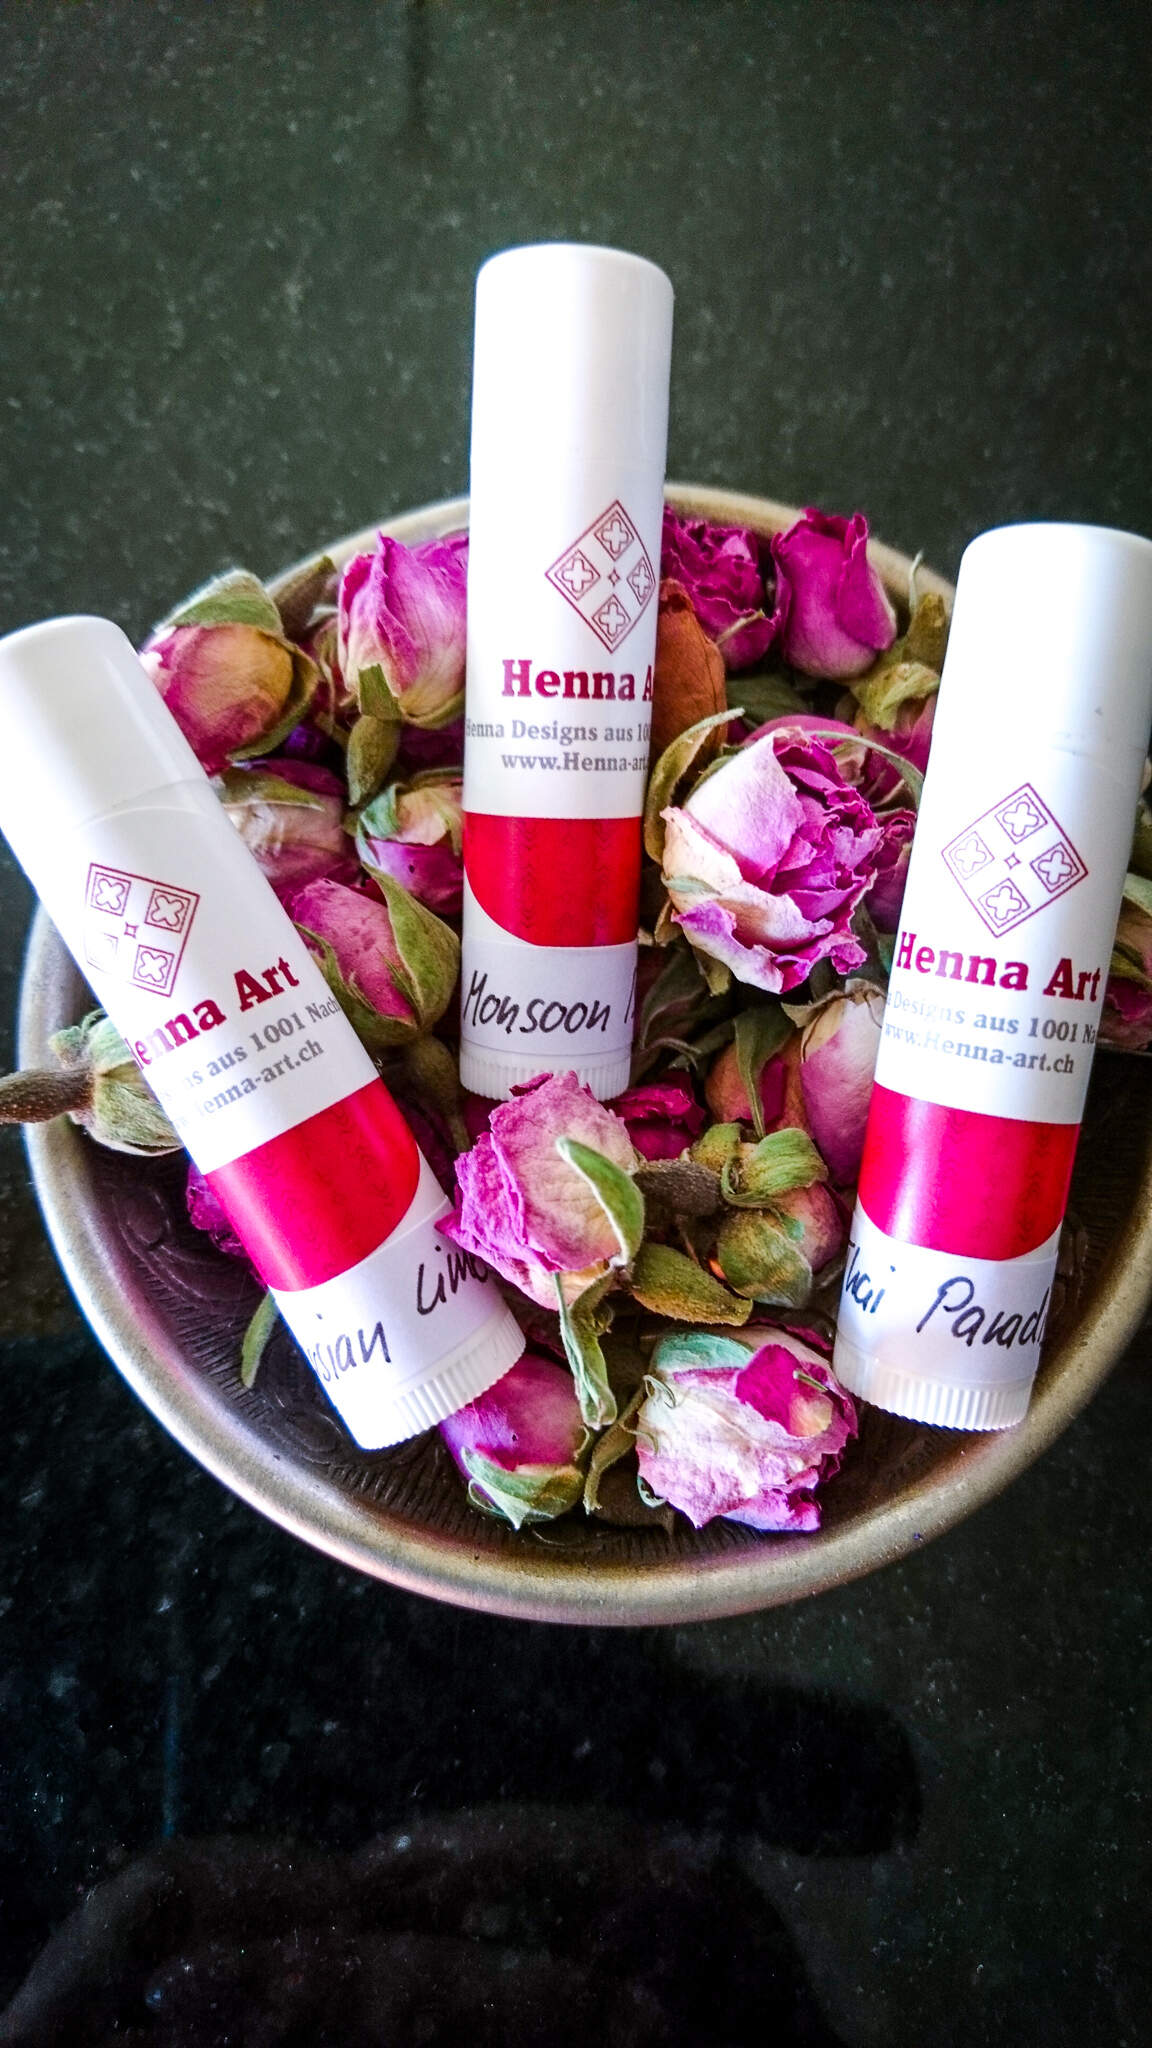 Henna after care Balm